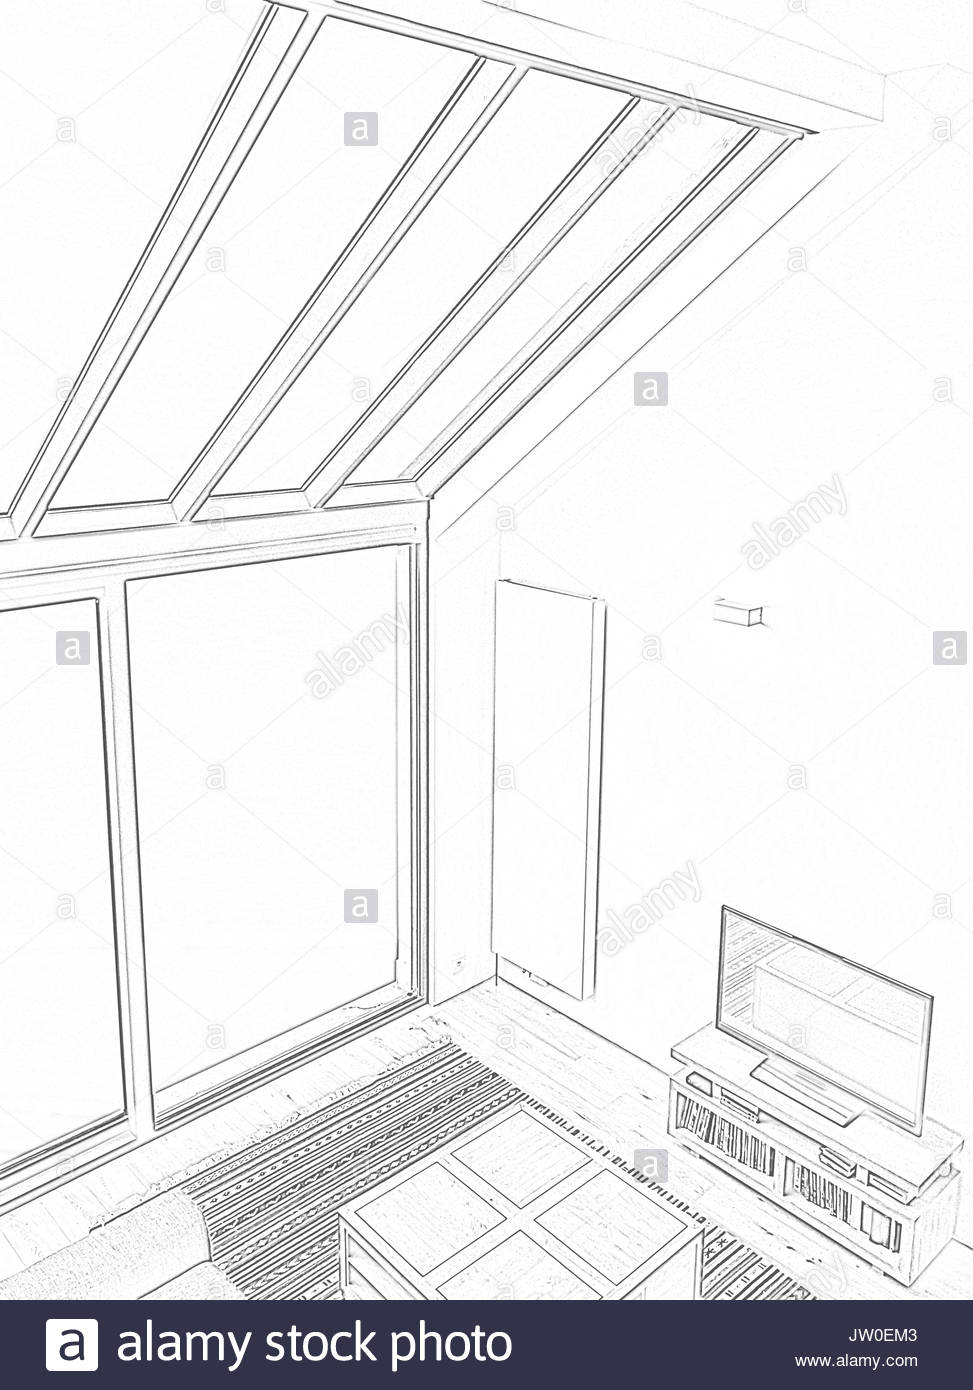 973x1390 Drawing Room Black And White Stock Photos Amp Images